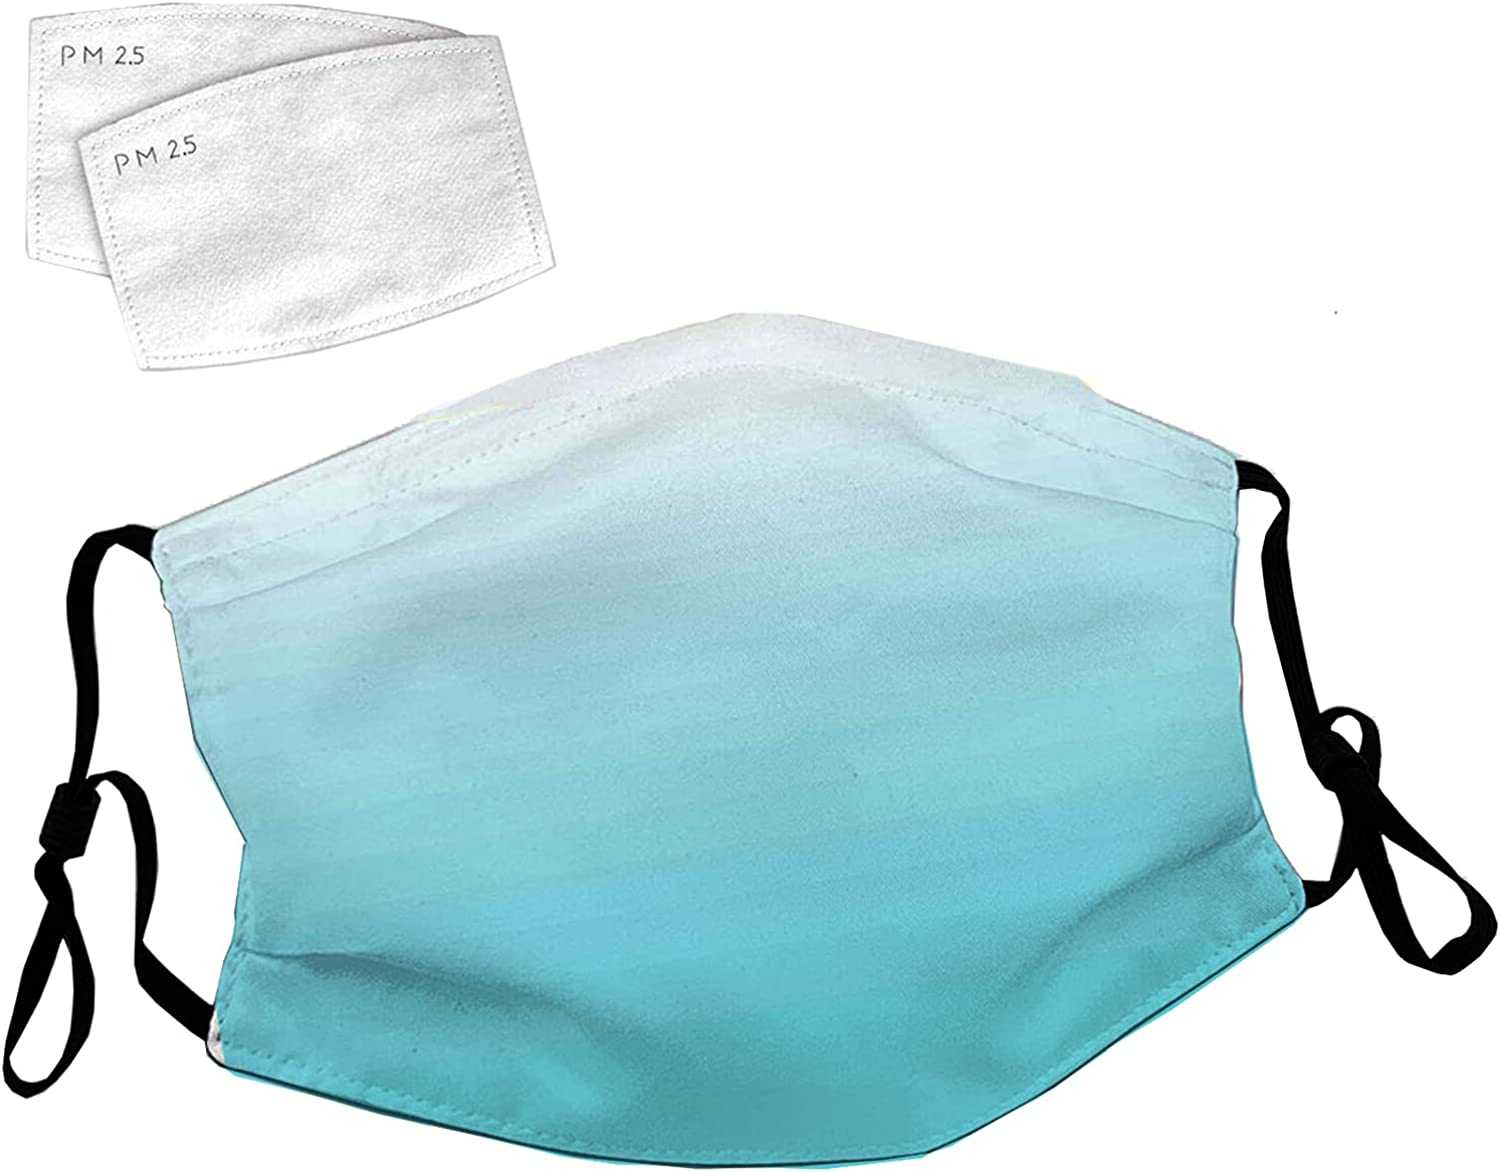 Reusable Face Mask with Adjustable Maldives Seali Deep Max 72% OFF Year-end annual account Ear Loops